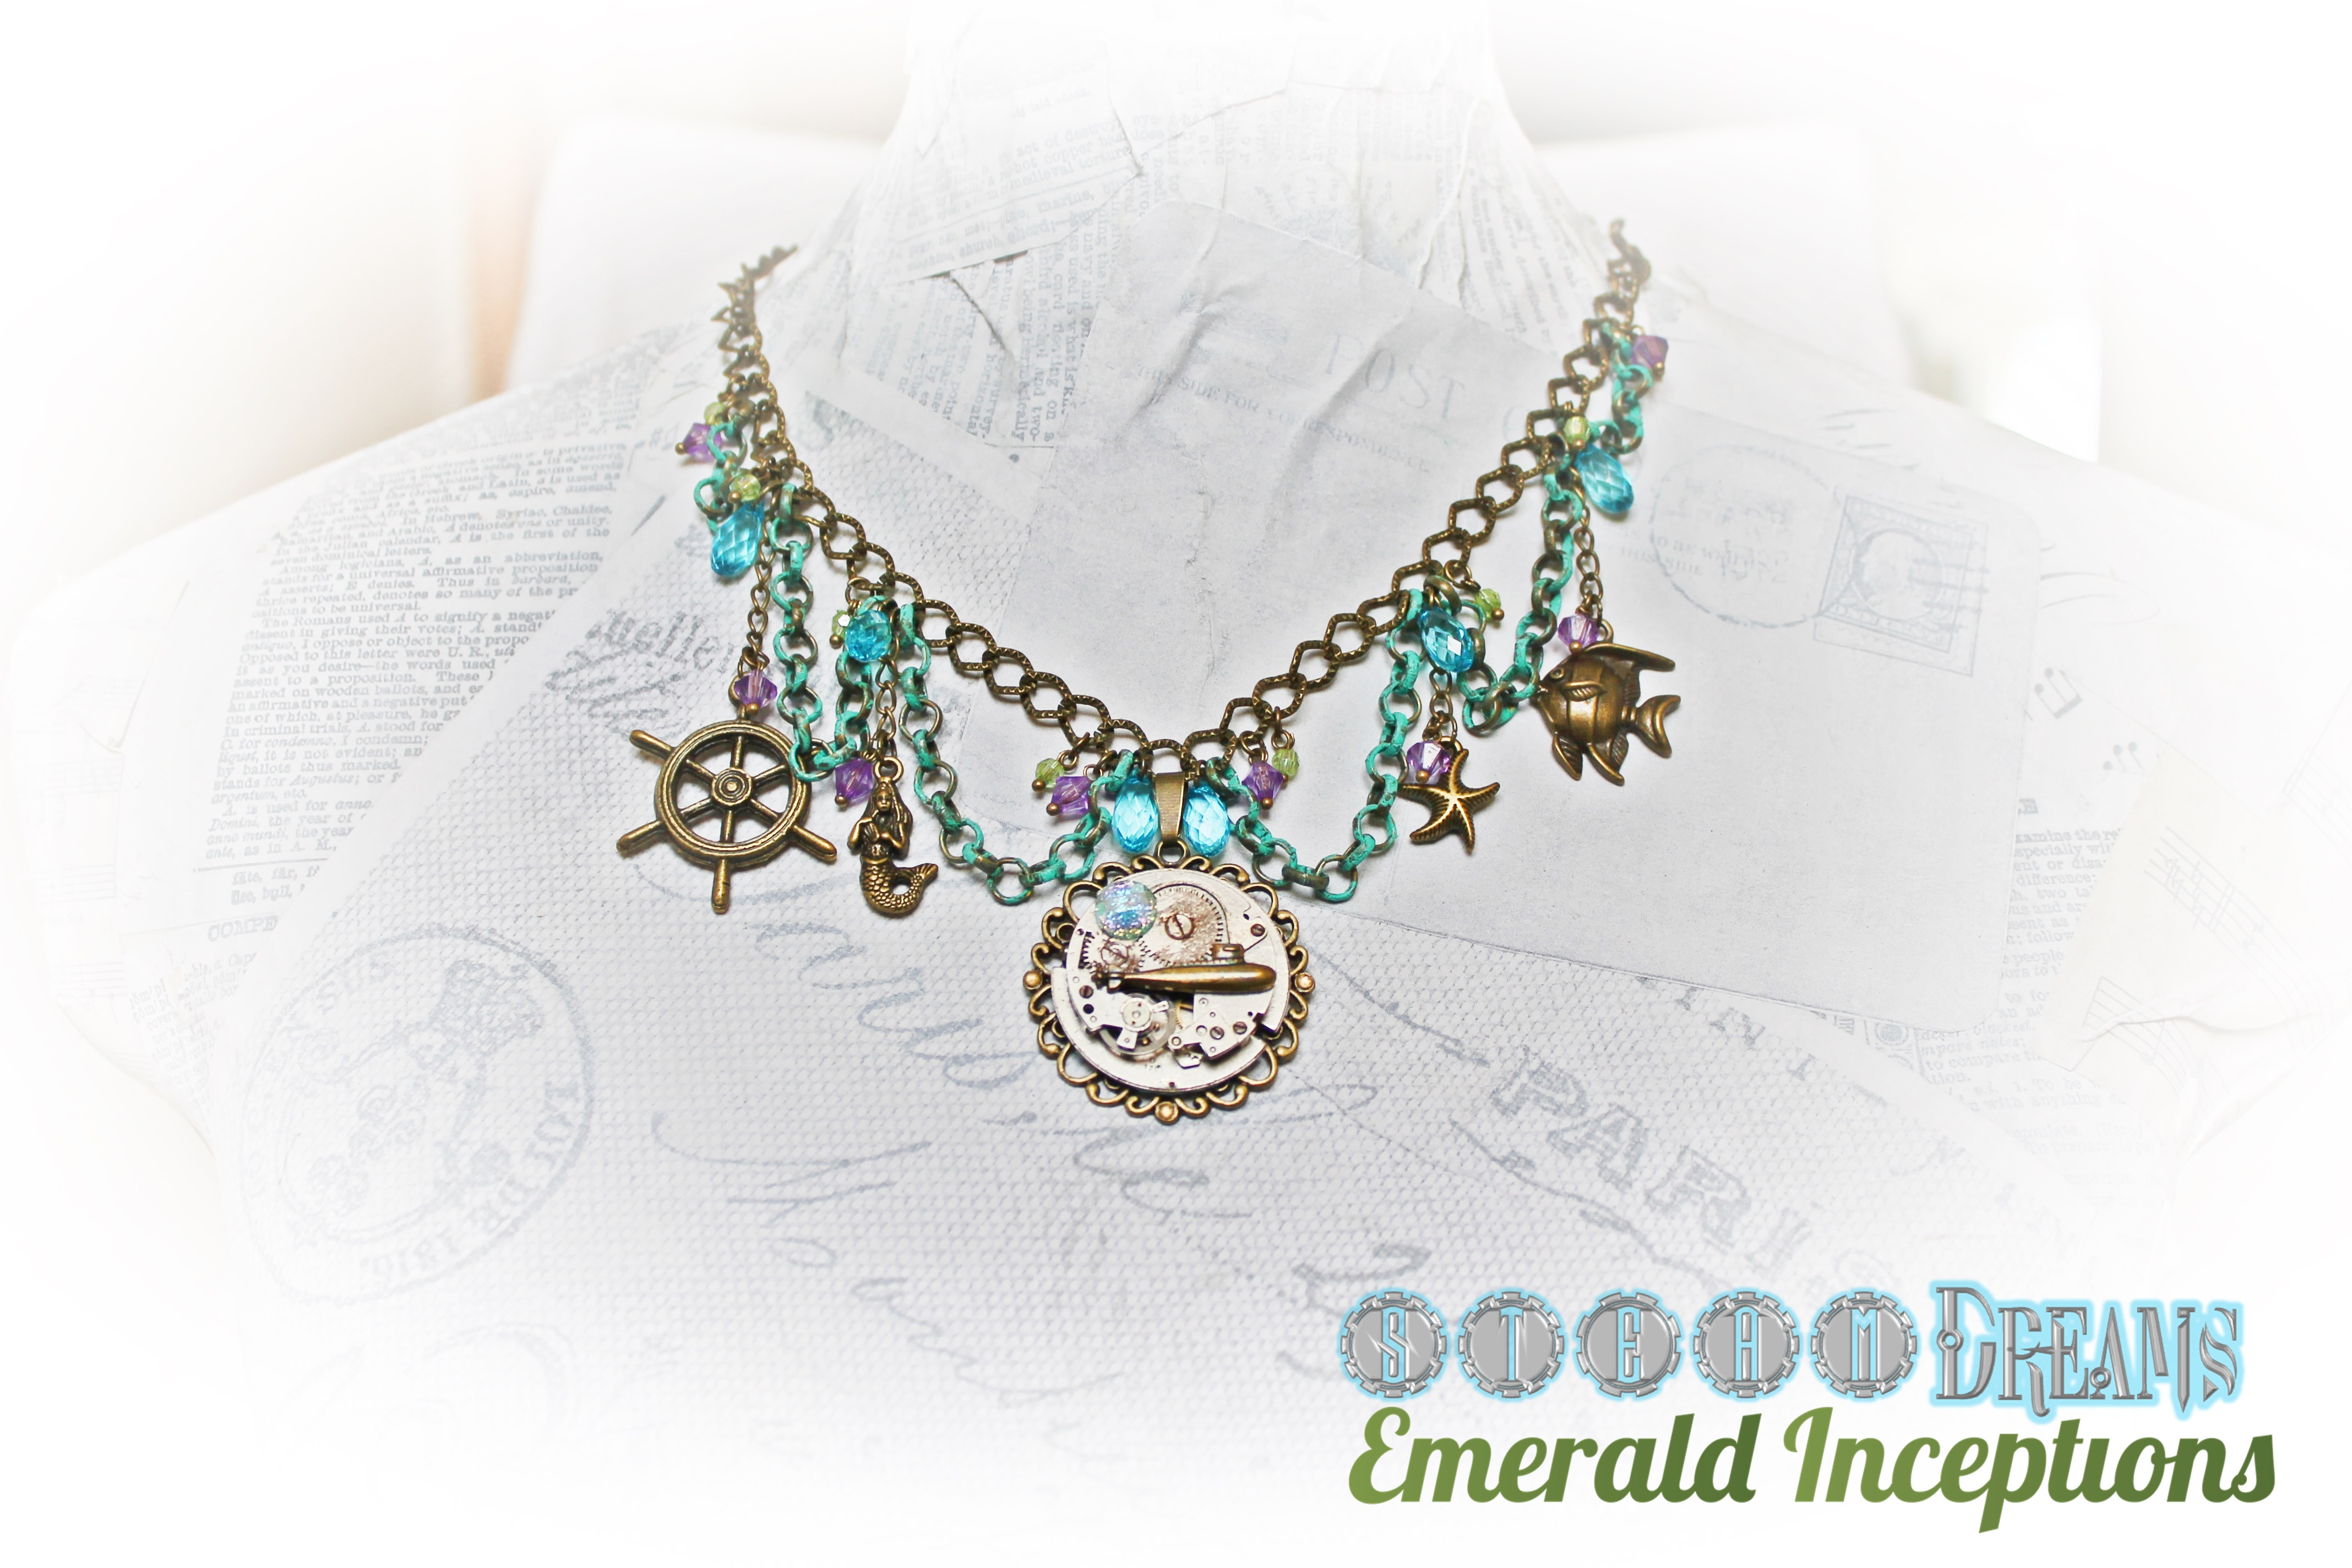 steampunk_necklace_nautical_siren_dreams_necklaces_4.JPG